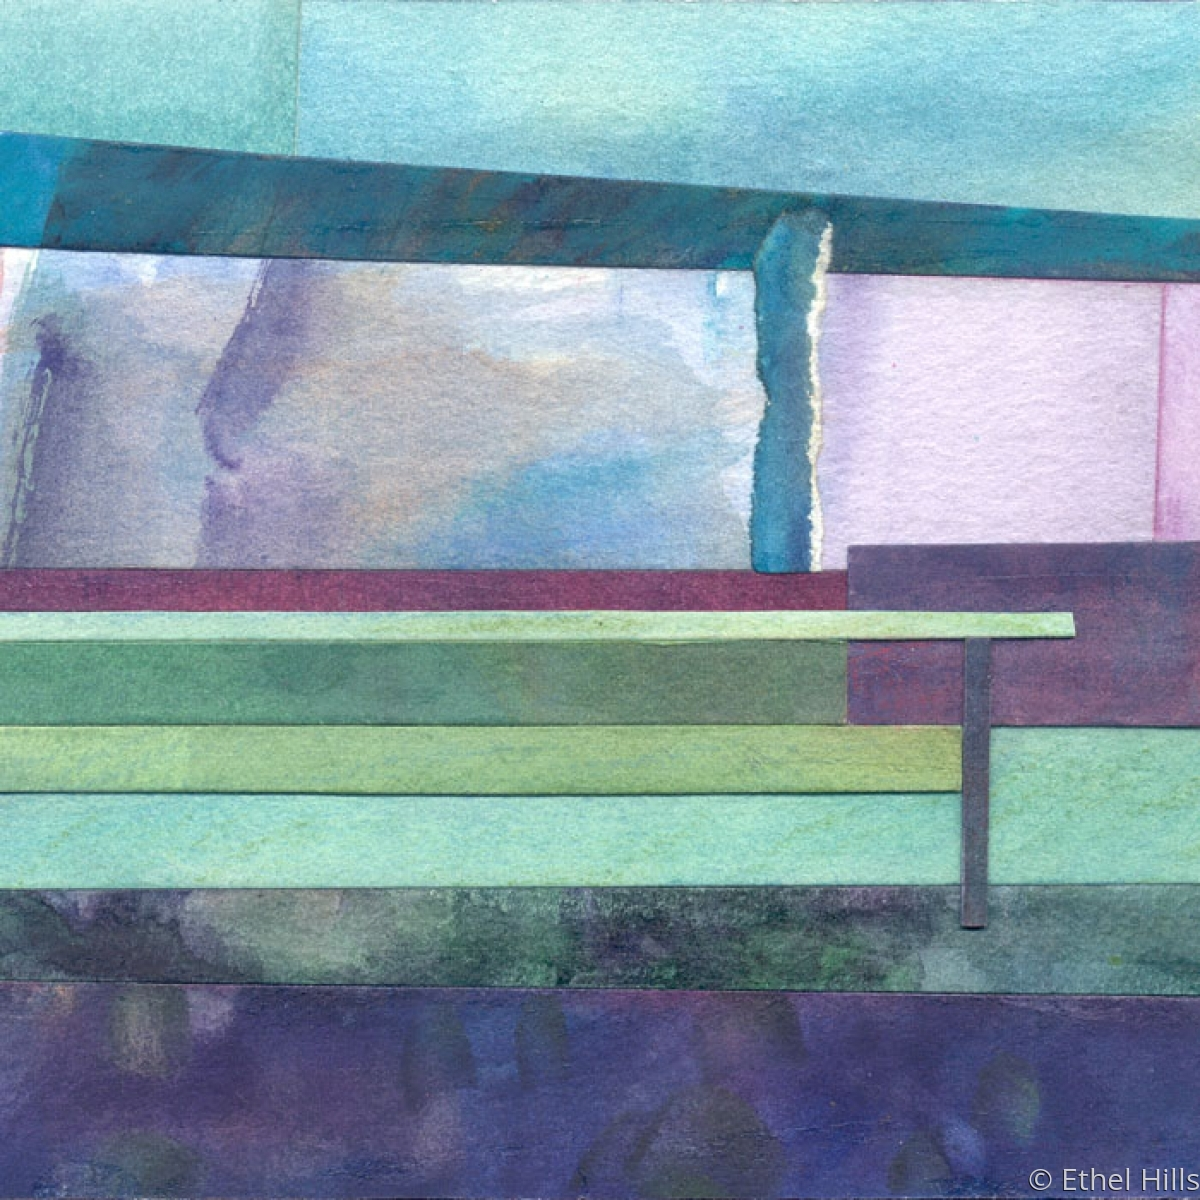 abstract landscape painting in mixed media collage on panel by Ethel Hills in blues, lavenders and green (large view)